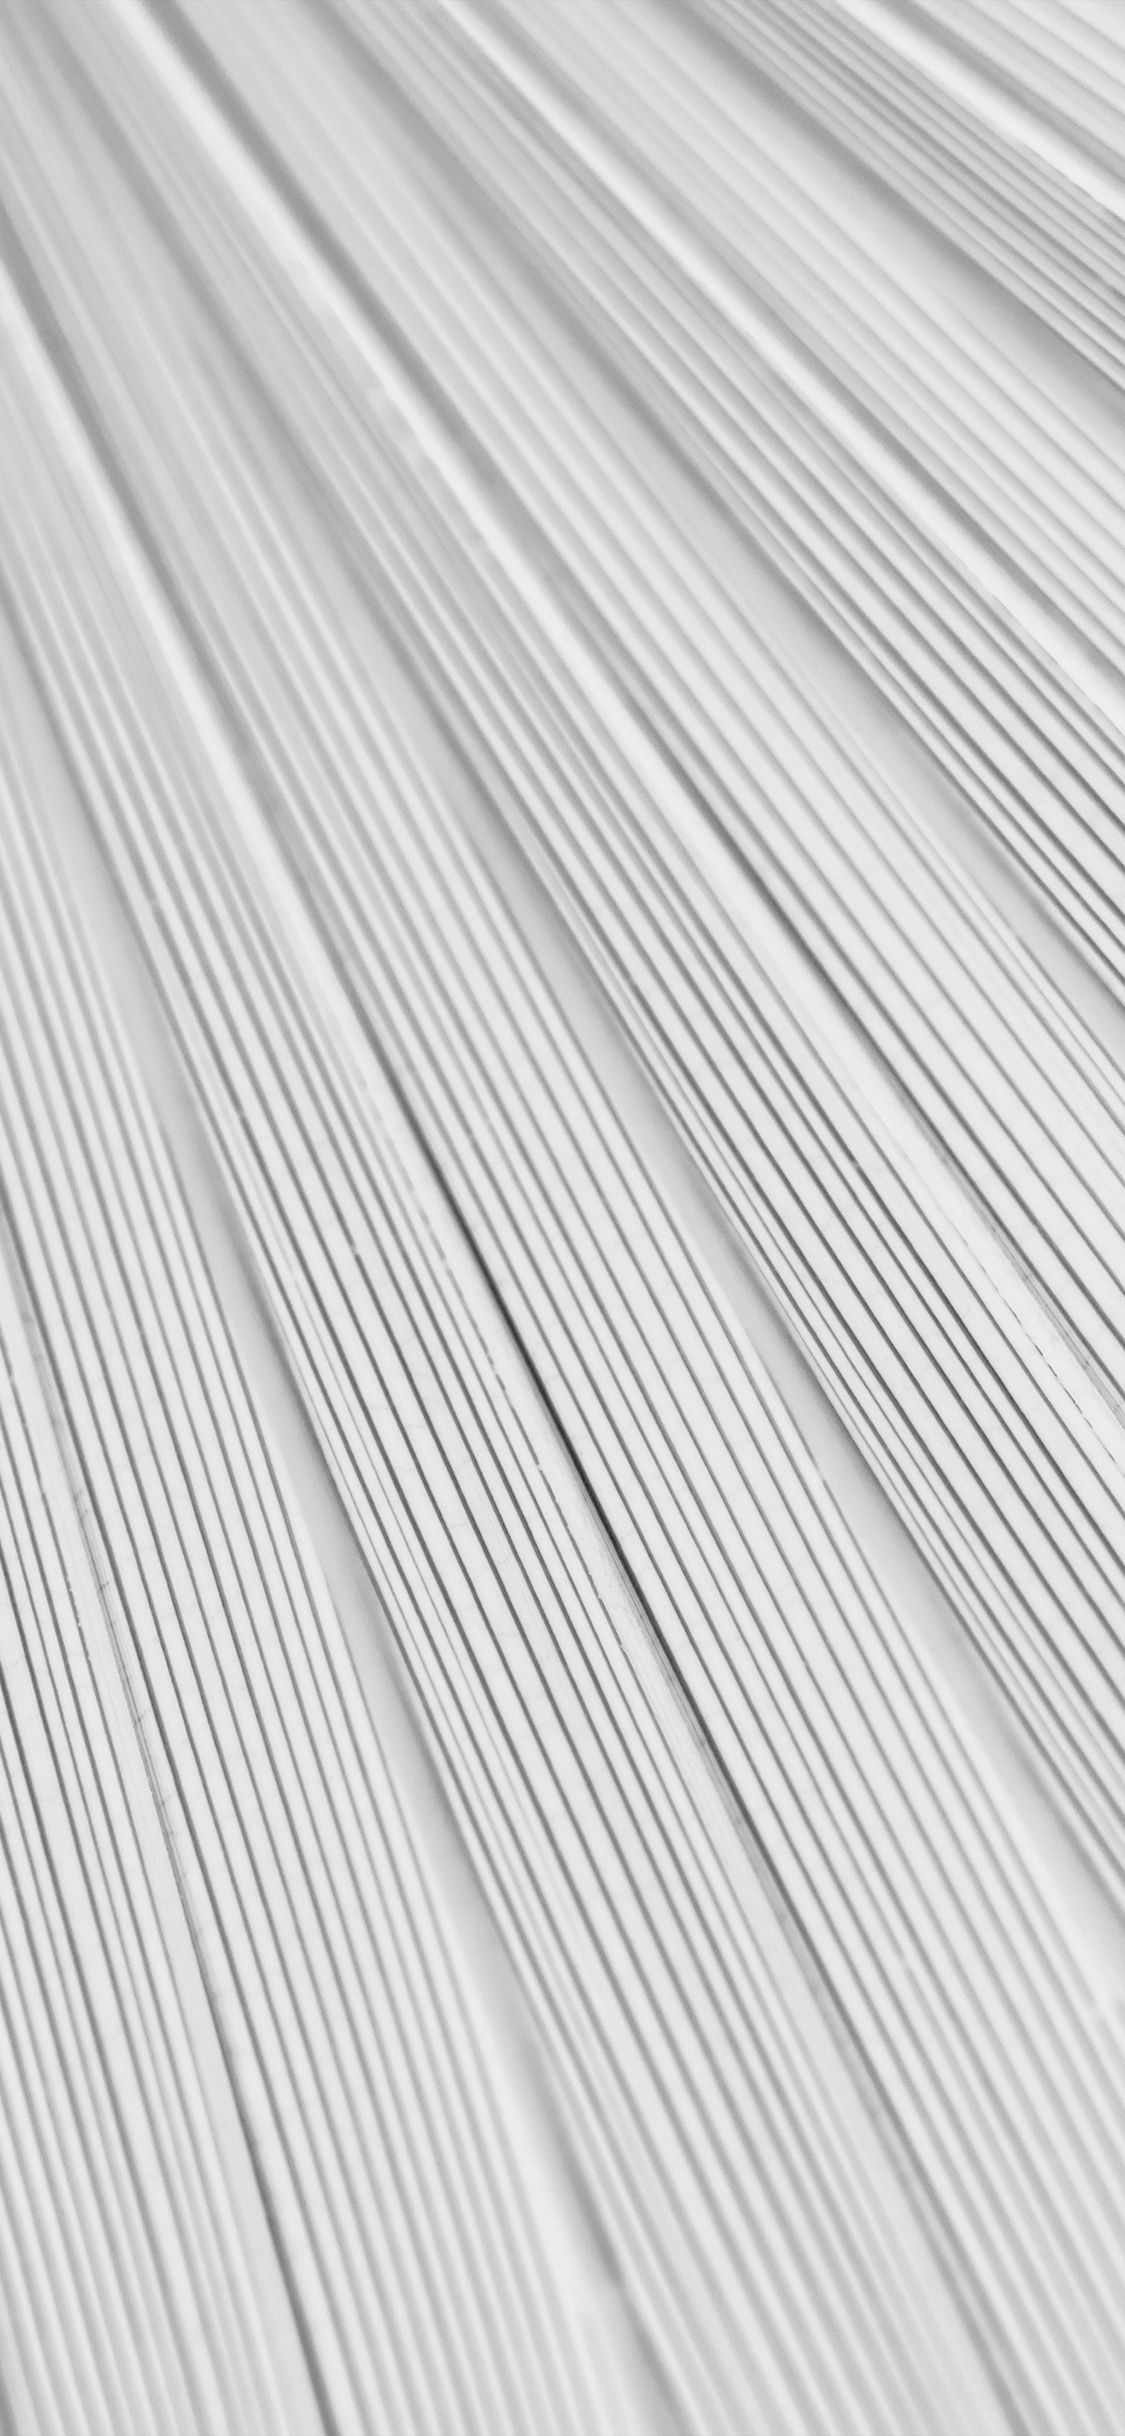 iPhoneXpapers.com-Apple-iPhone-wallpaper-vn32-leaf-white-surface-texture-nature-pattern-bw